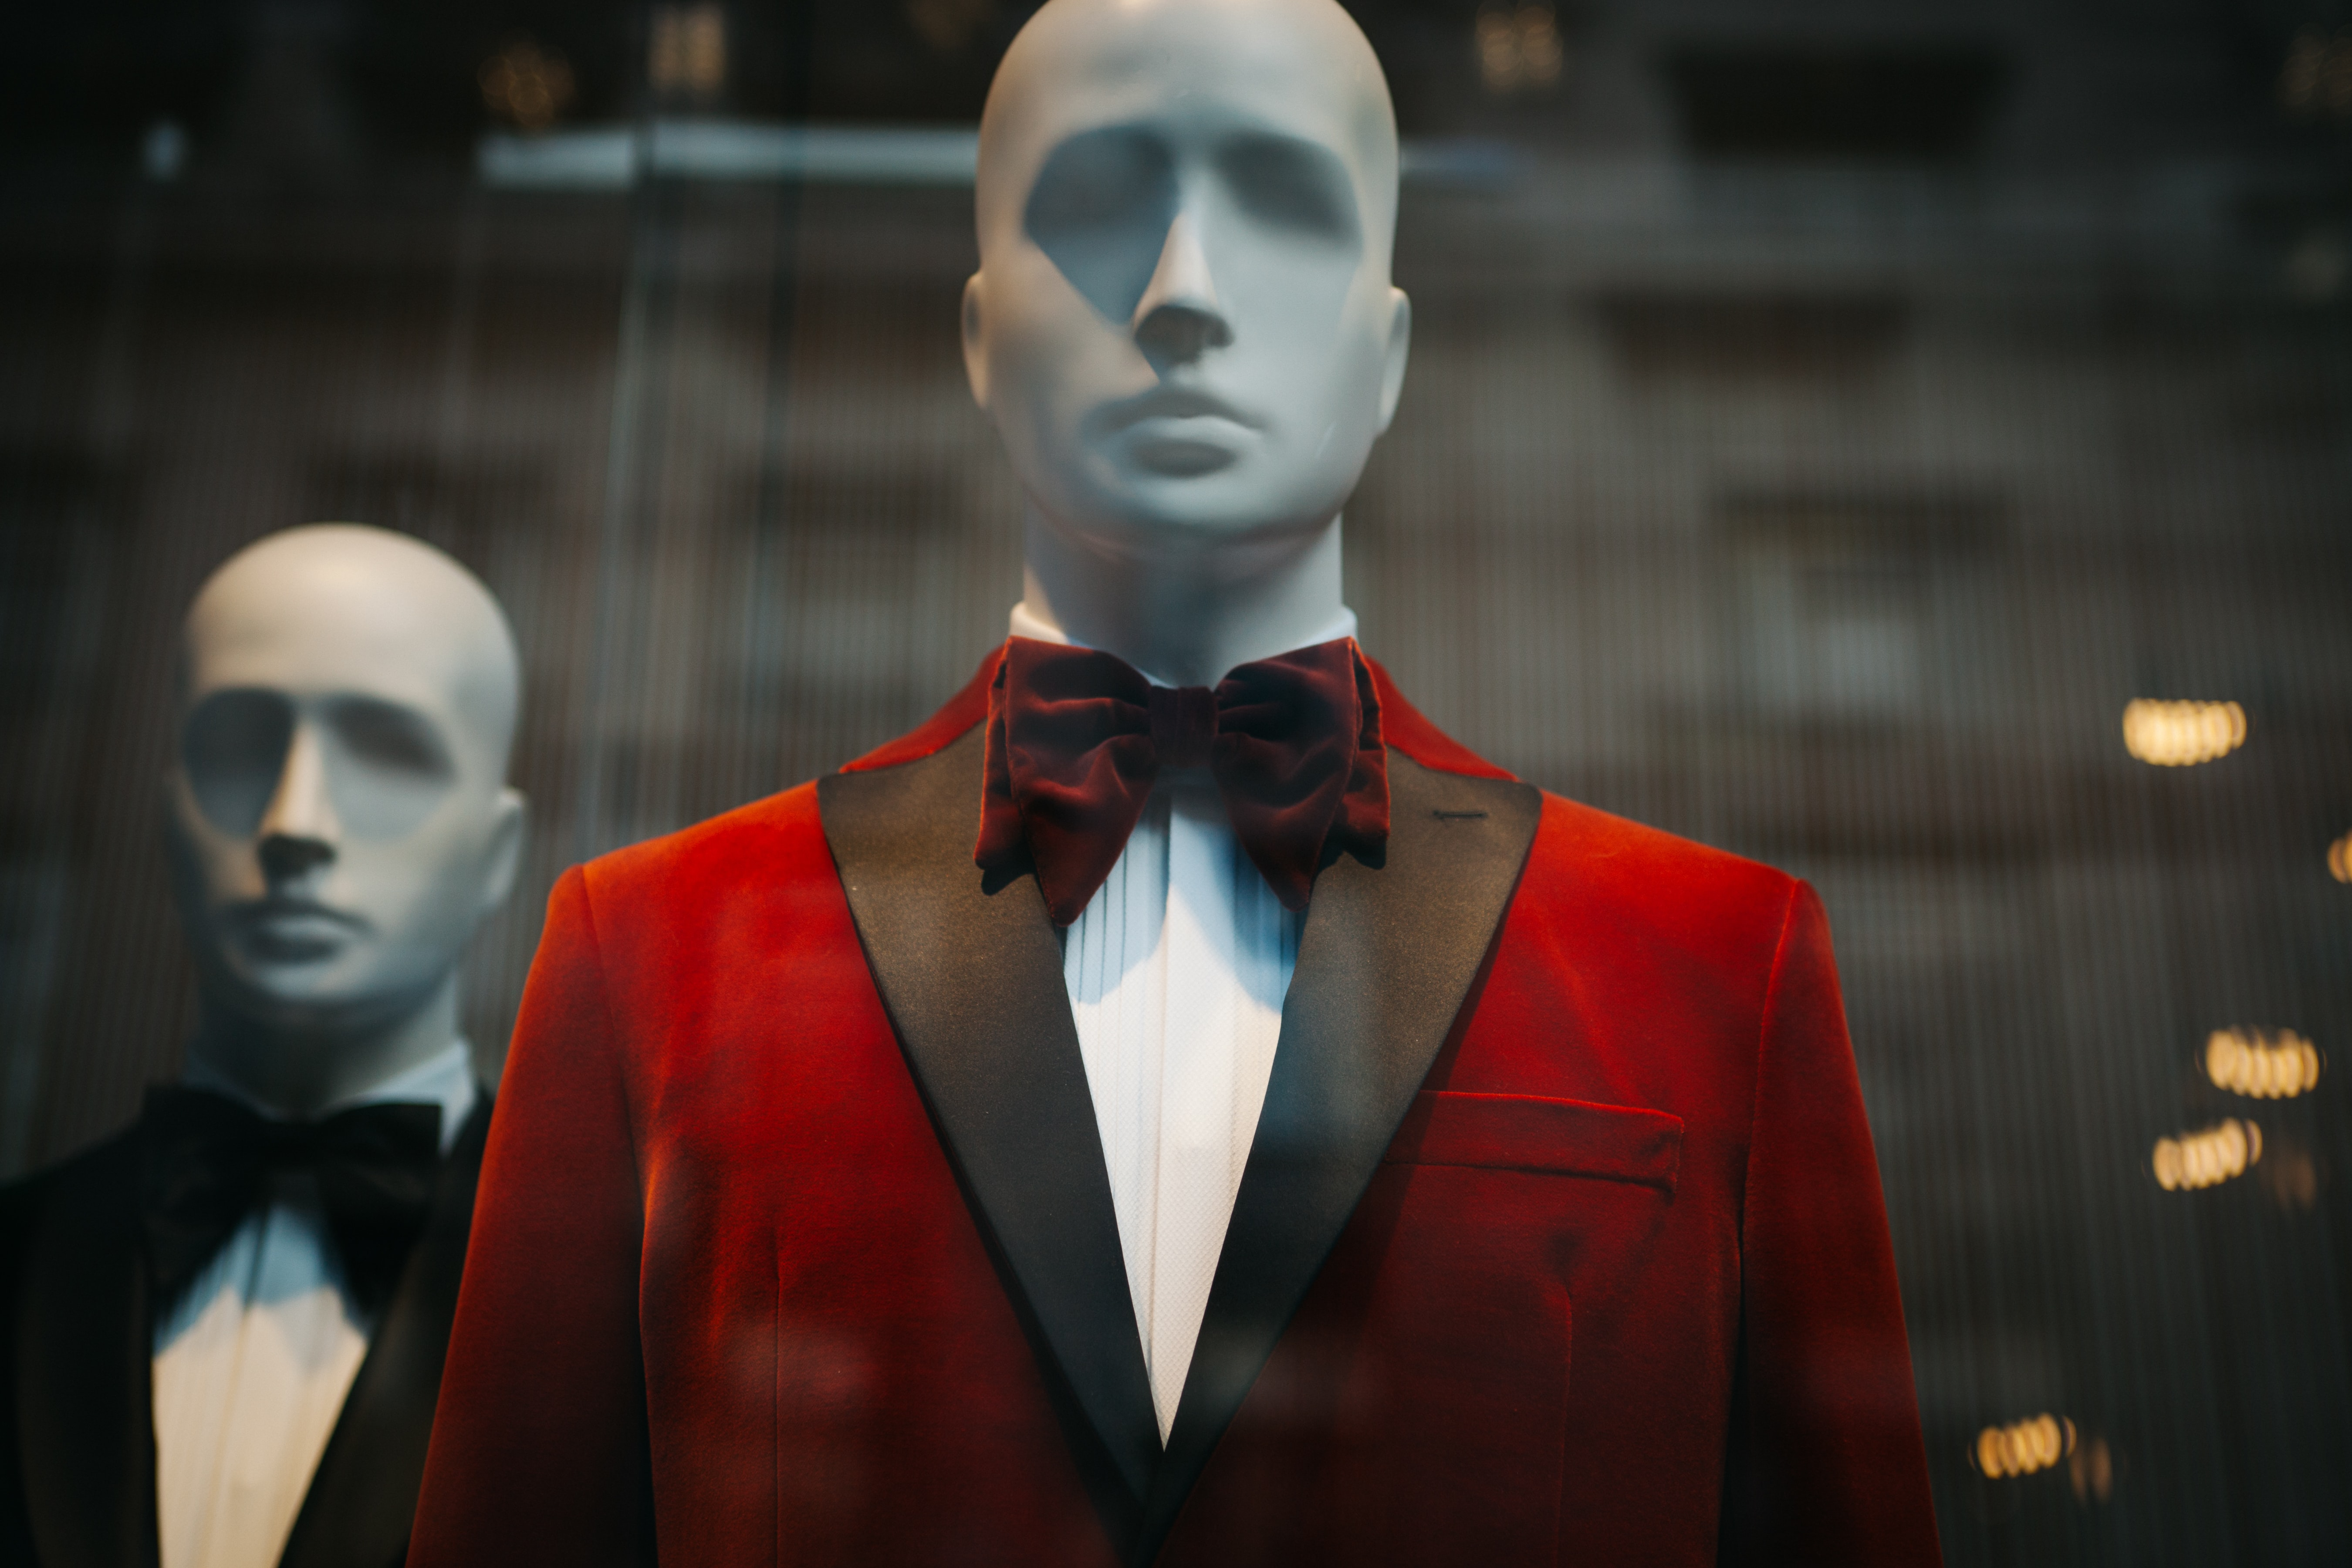 mannequin wearing red notched lapel suit jacket